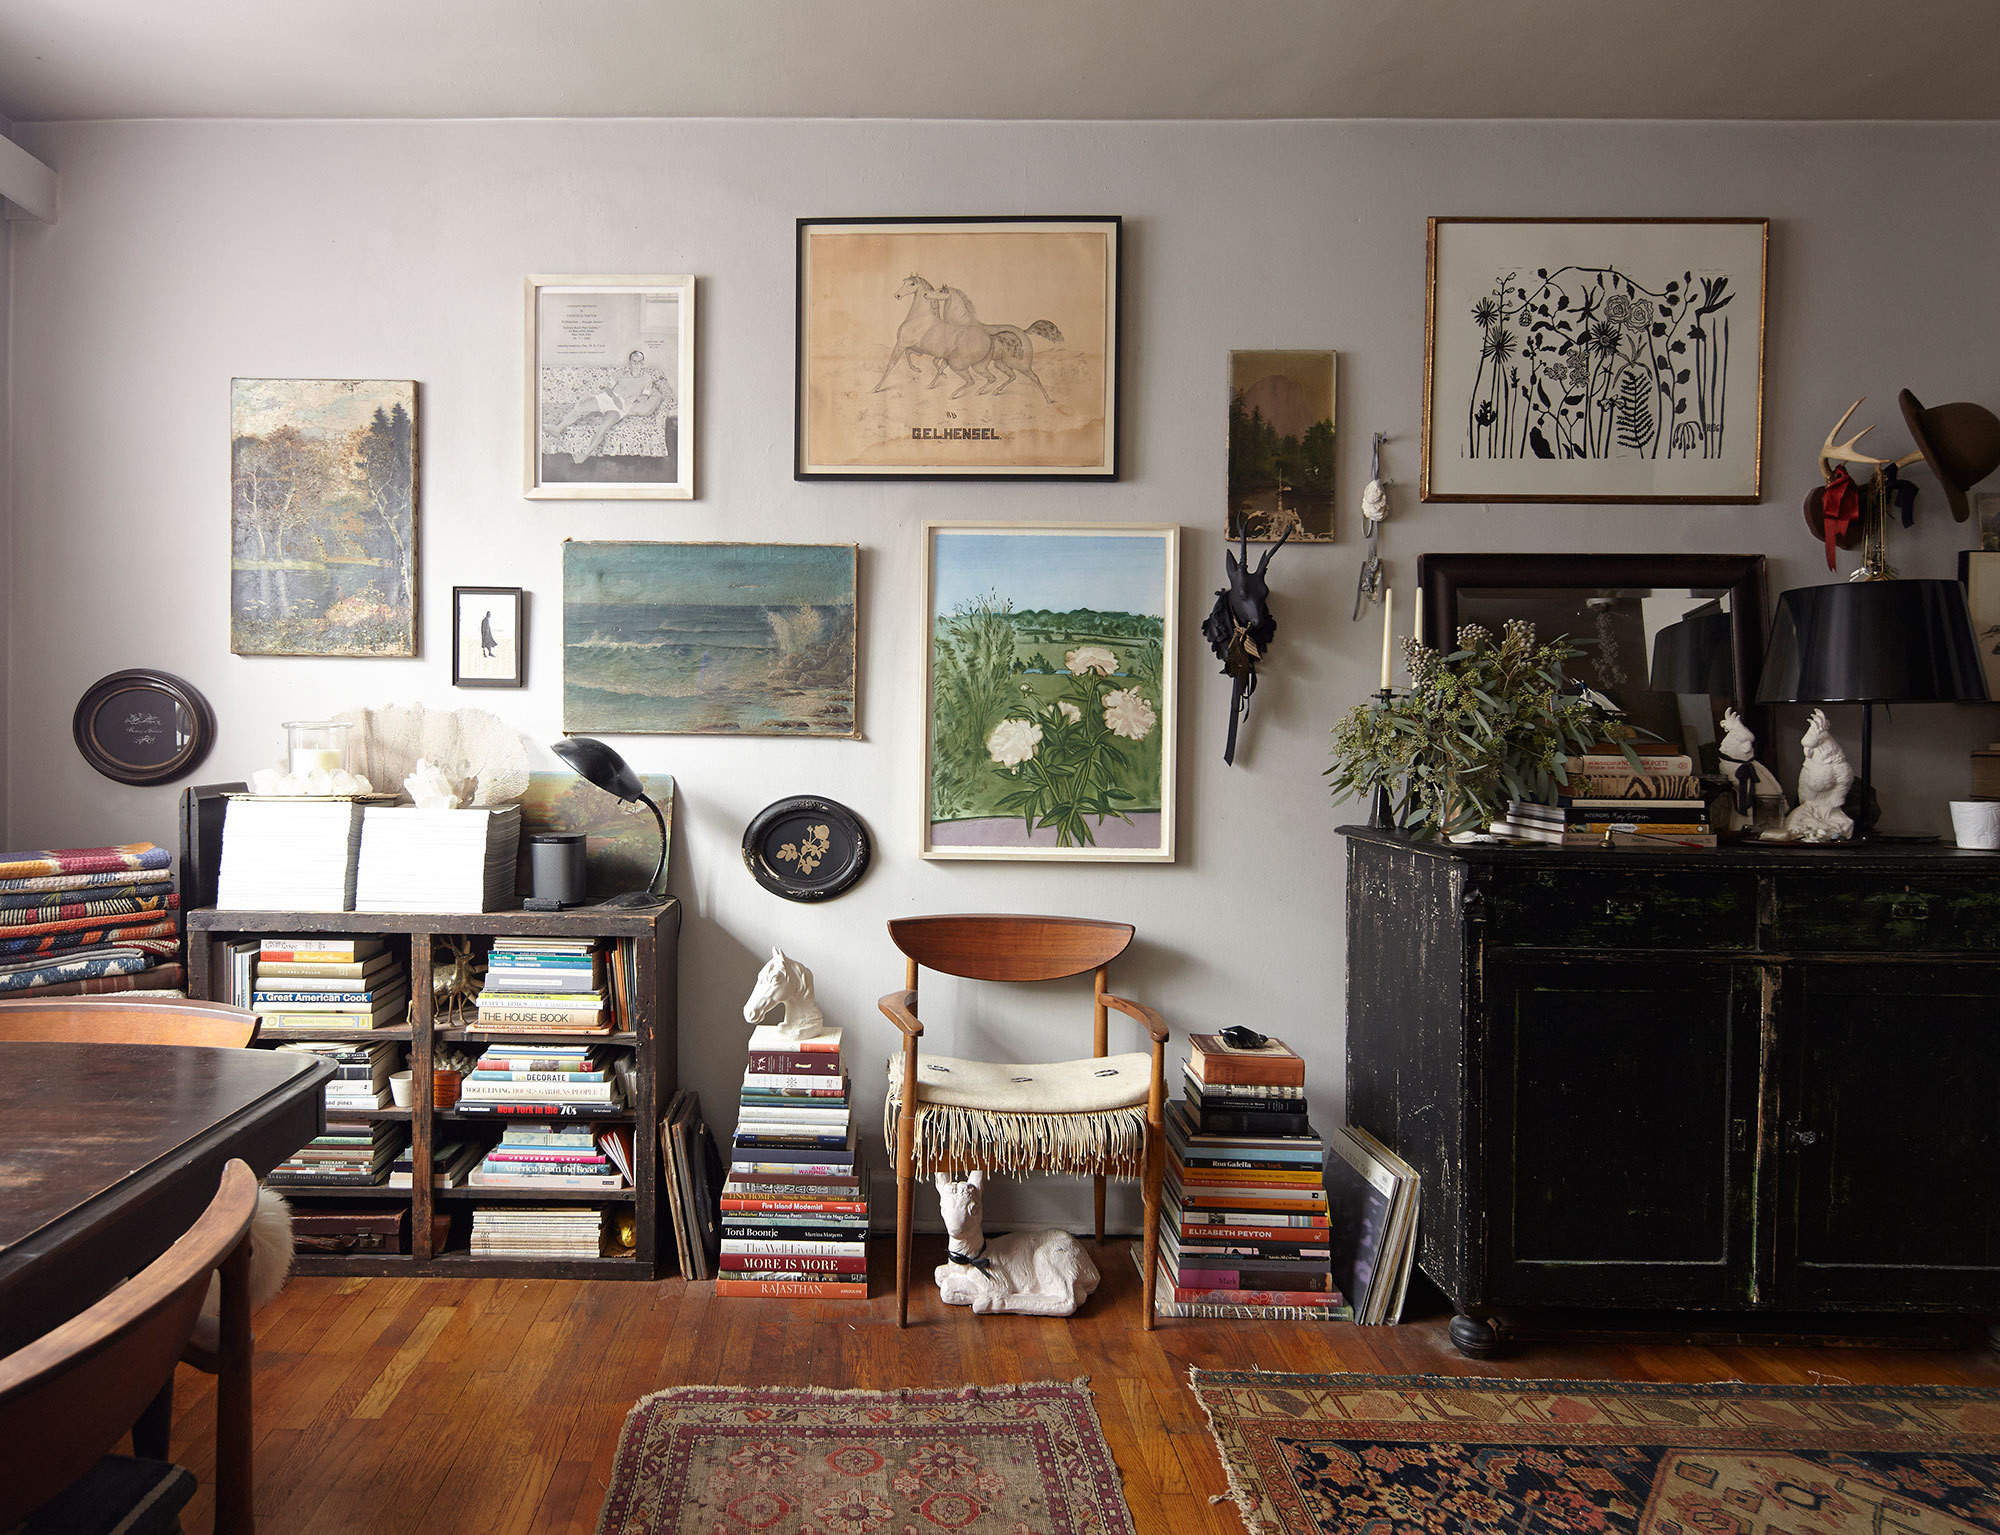 The Main Living Area Of Ann Stephenson And Lori Scaccos East Village Studio Filled With